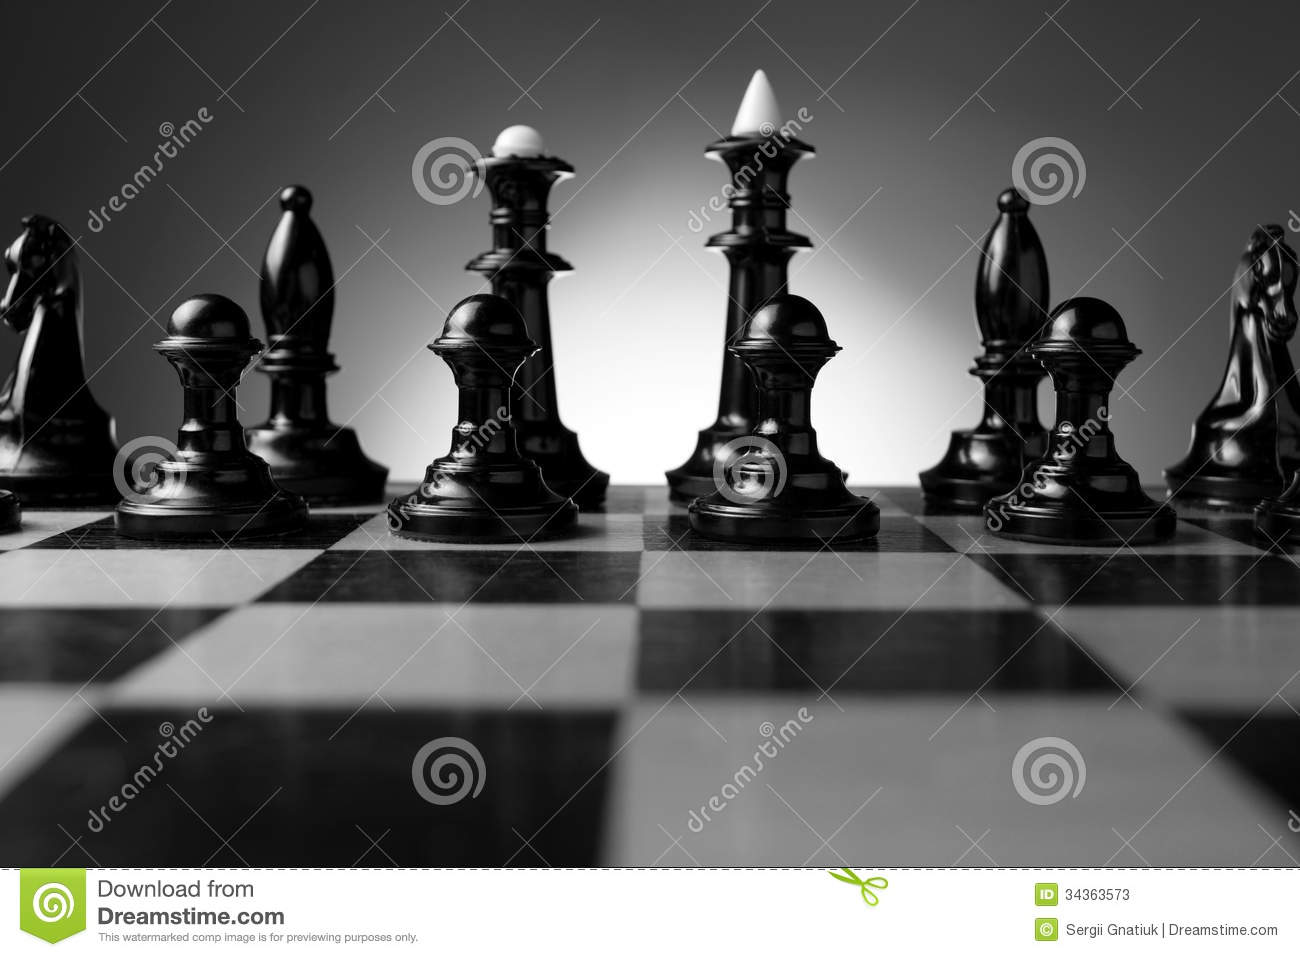 Backlit Chess Pieces On A Chessboard Stock Image - Image ...